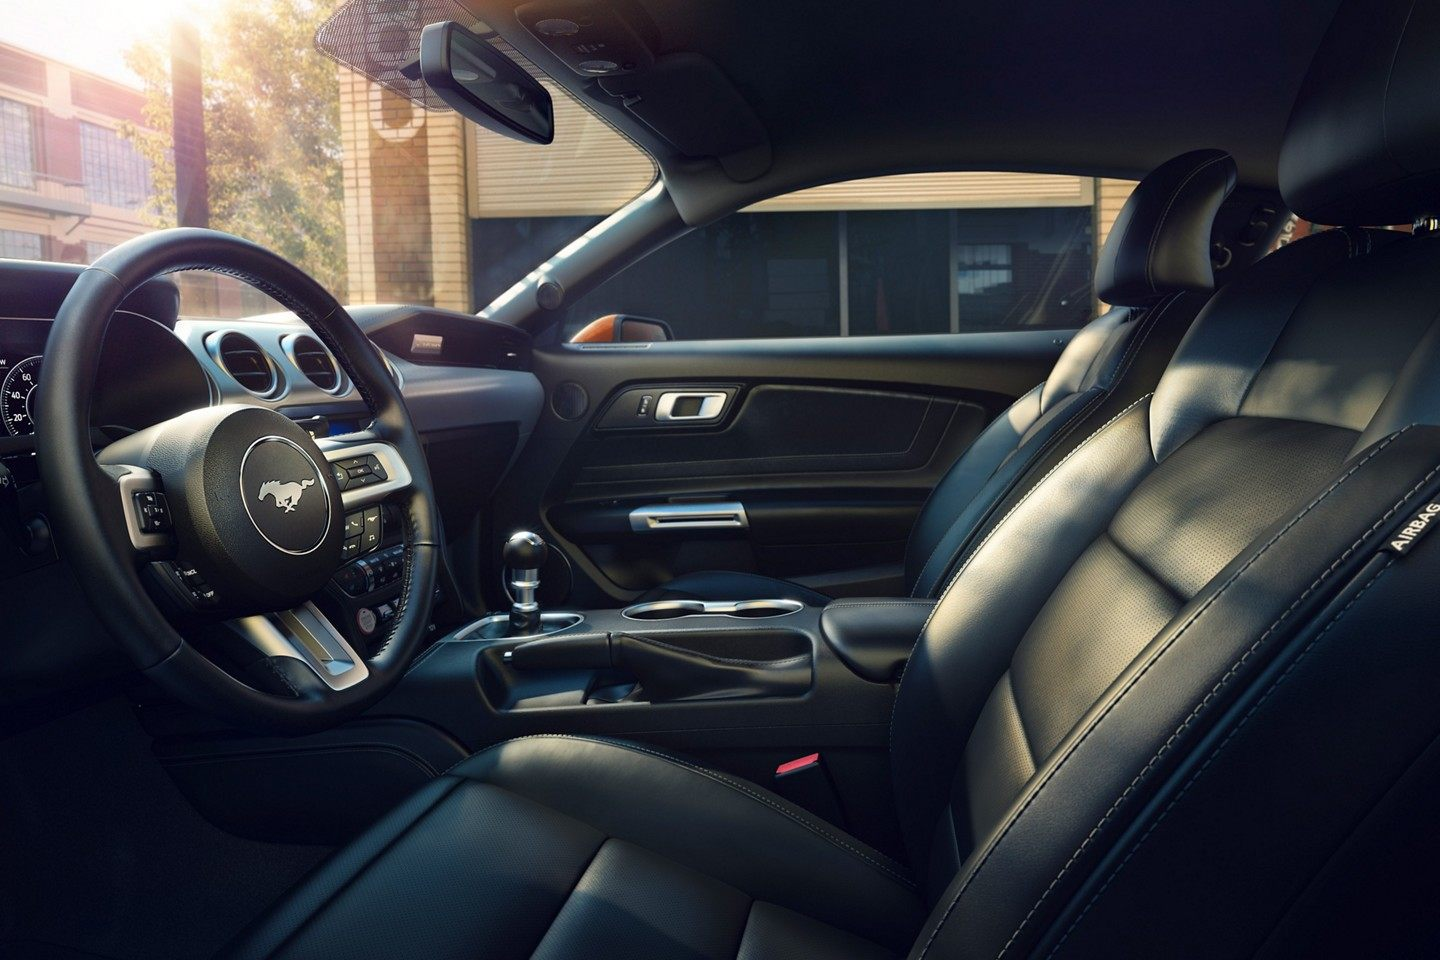 2019 Mustang Cockpit